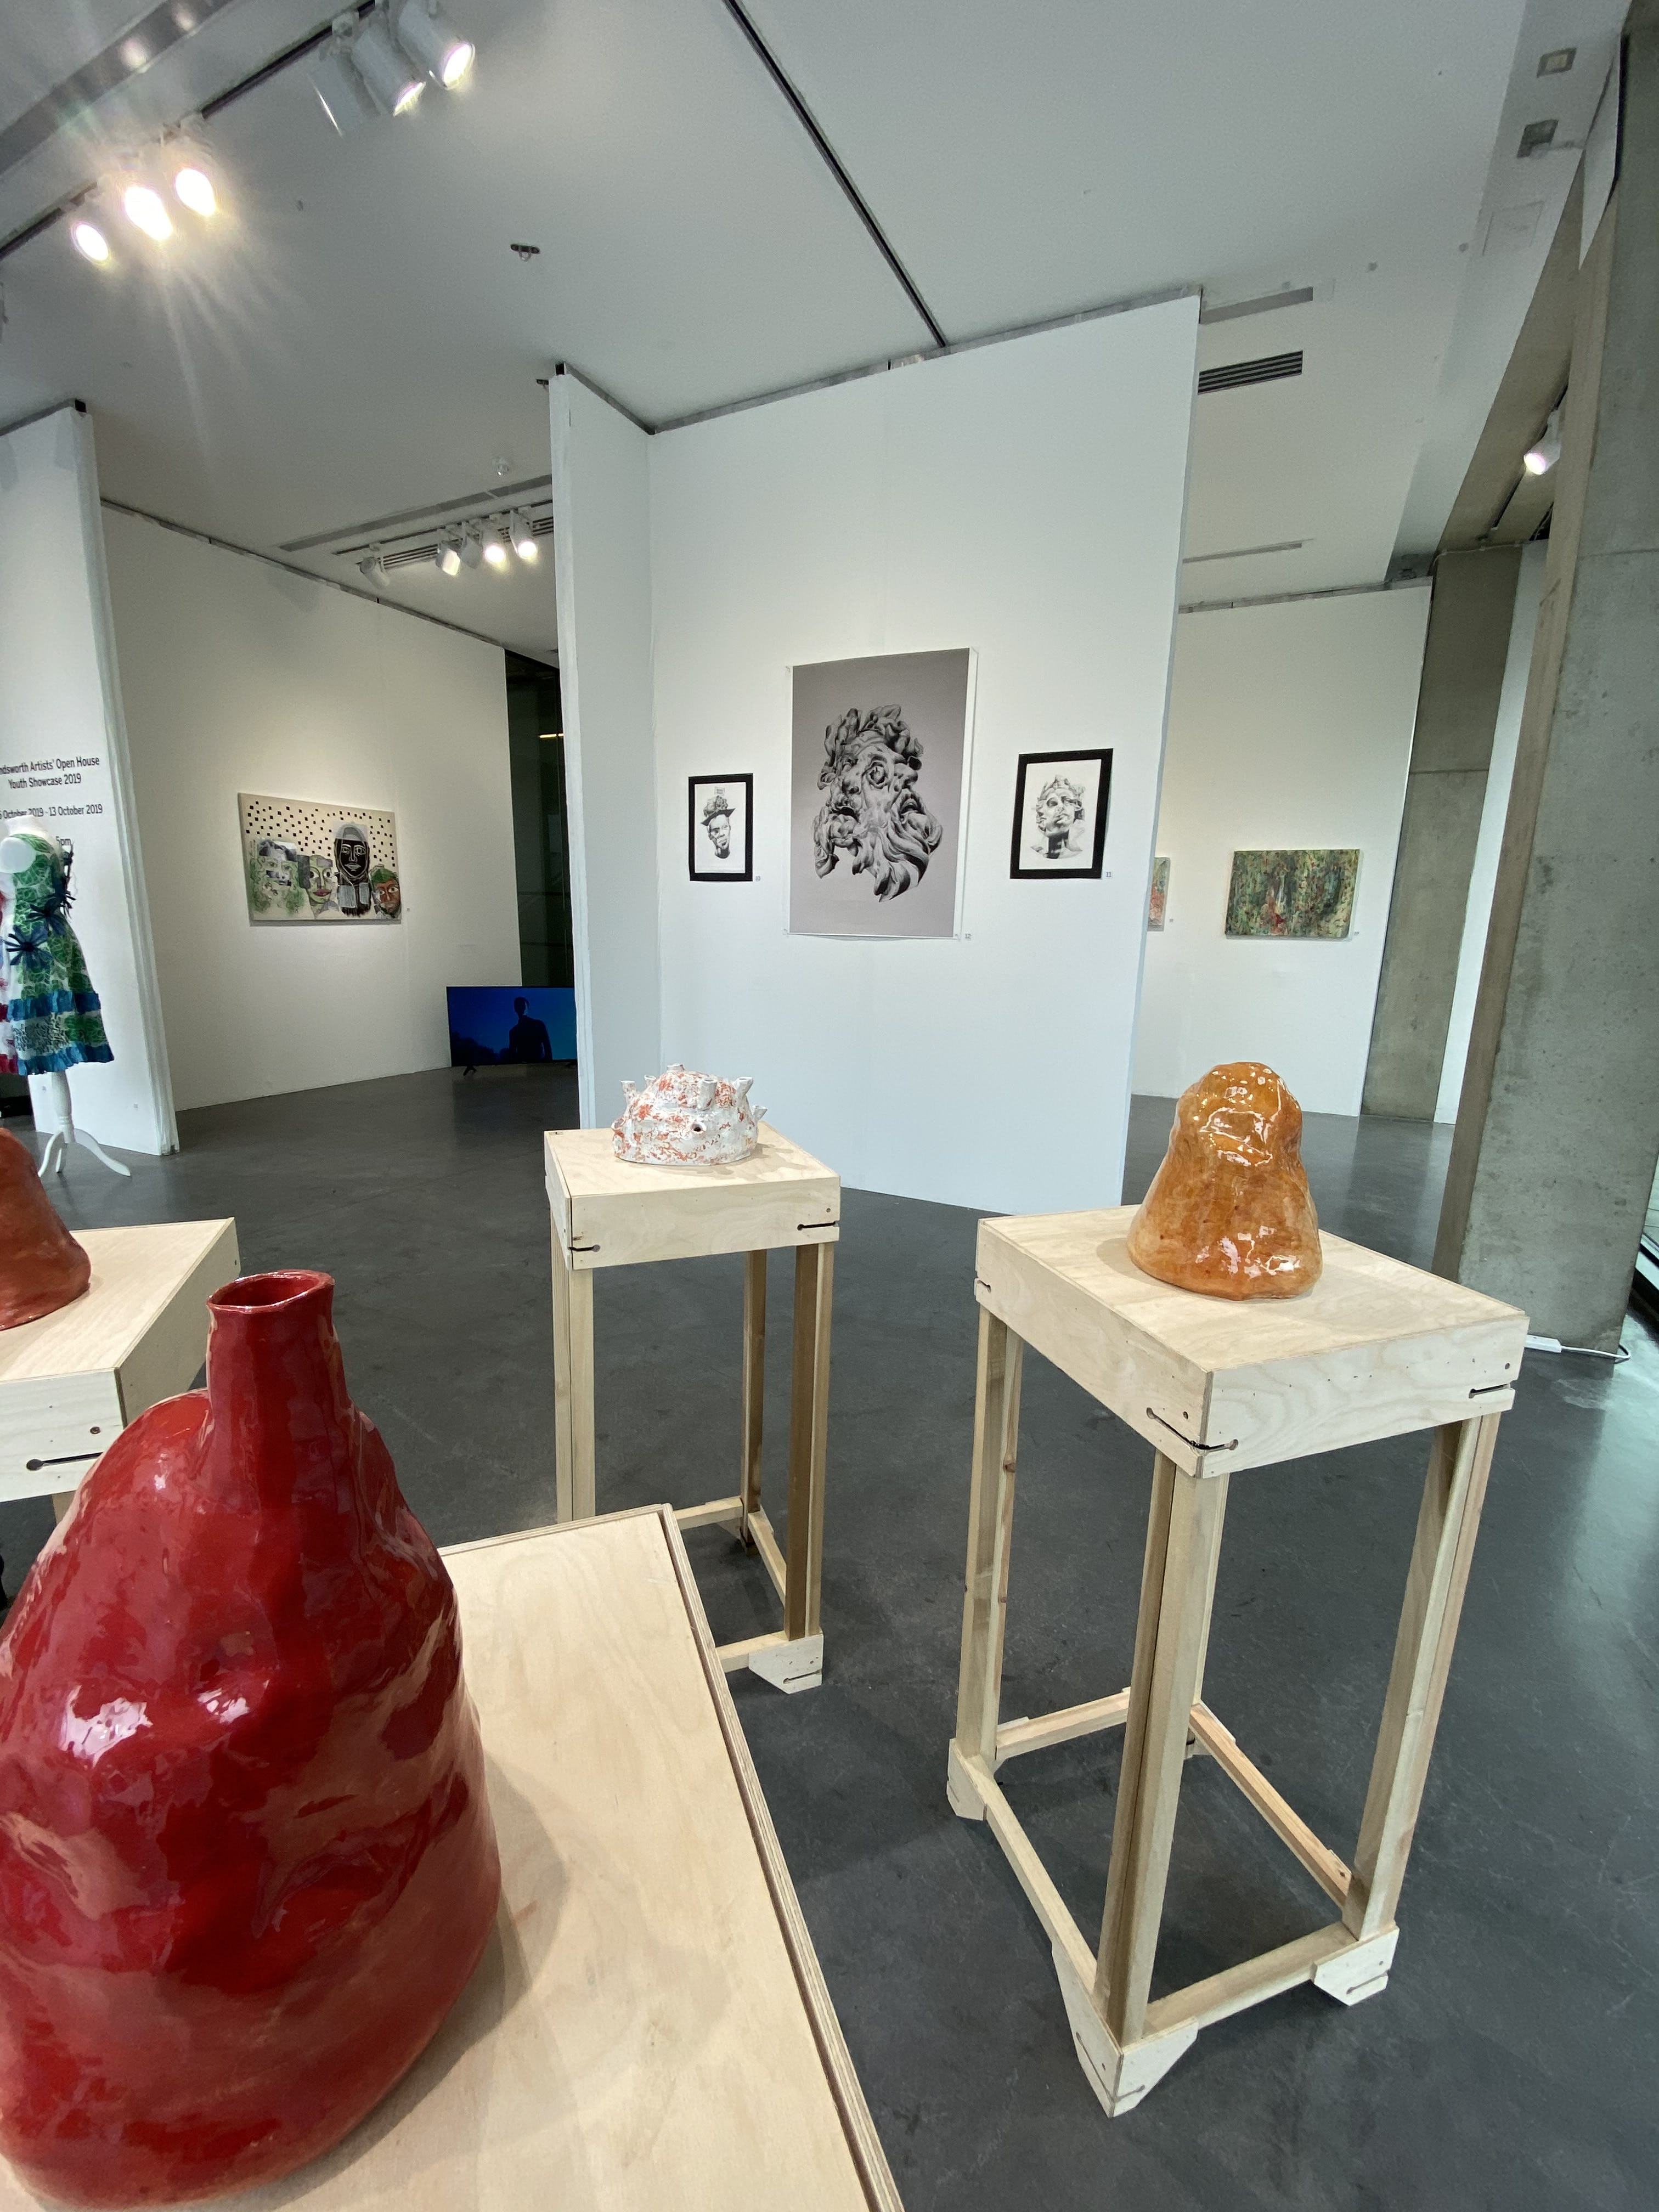 A view of the RCA Dyson Gallery with work by Salma Nassef, Pietra Galli, Kelly Mosquera and Anna Woodward